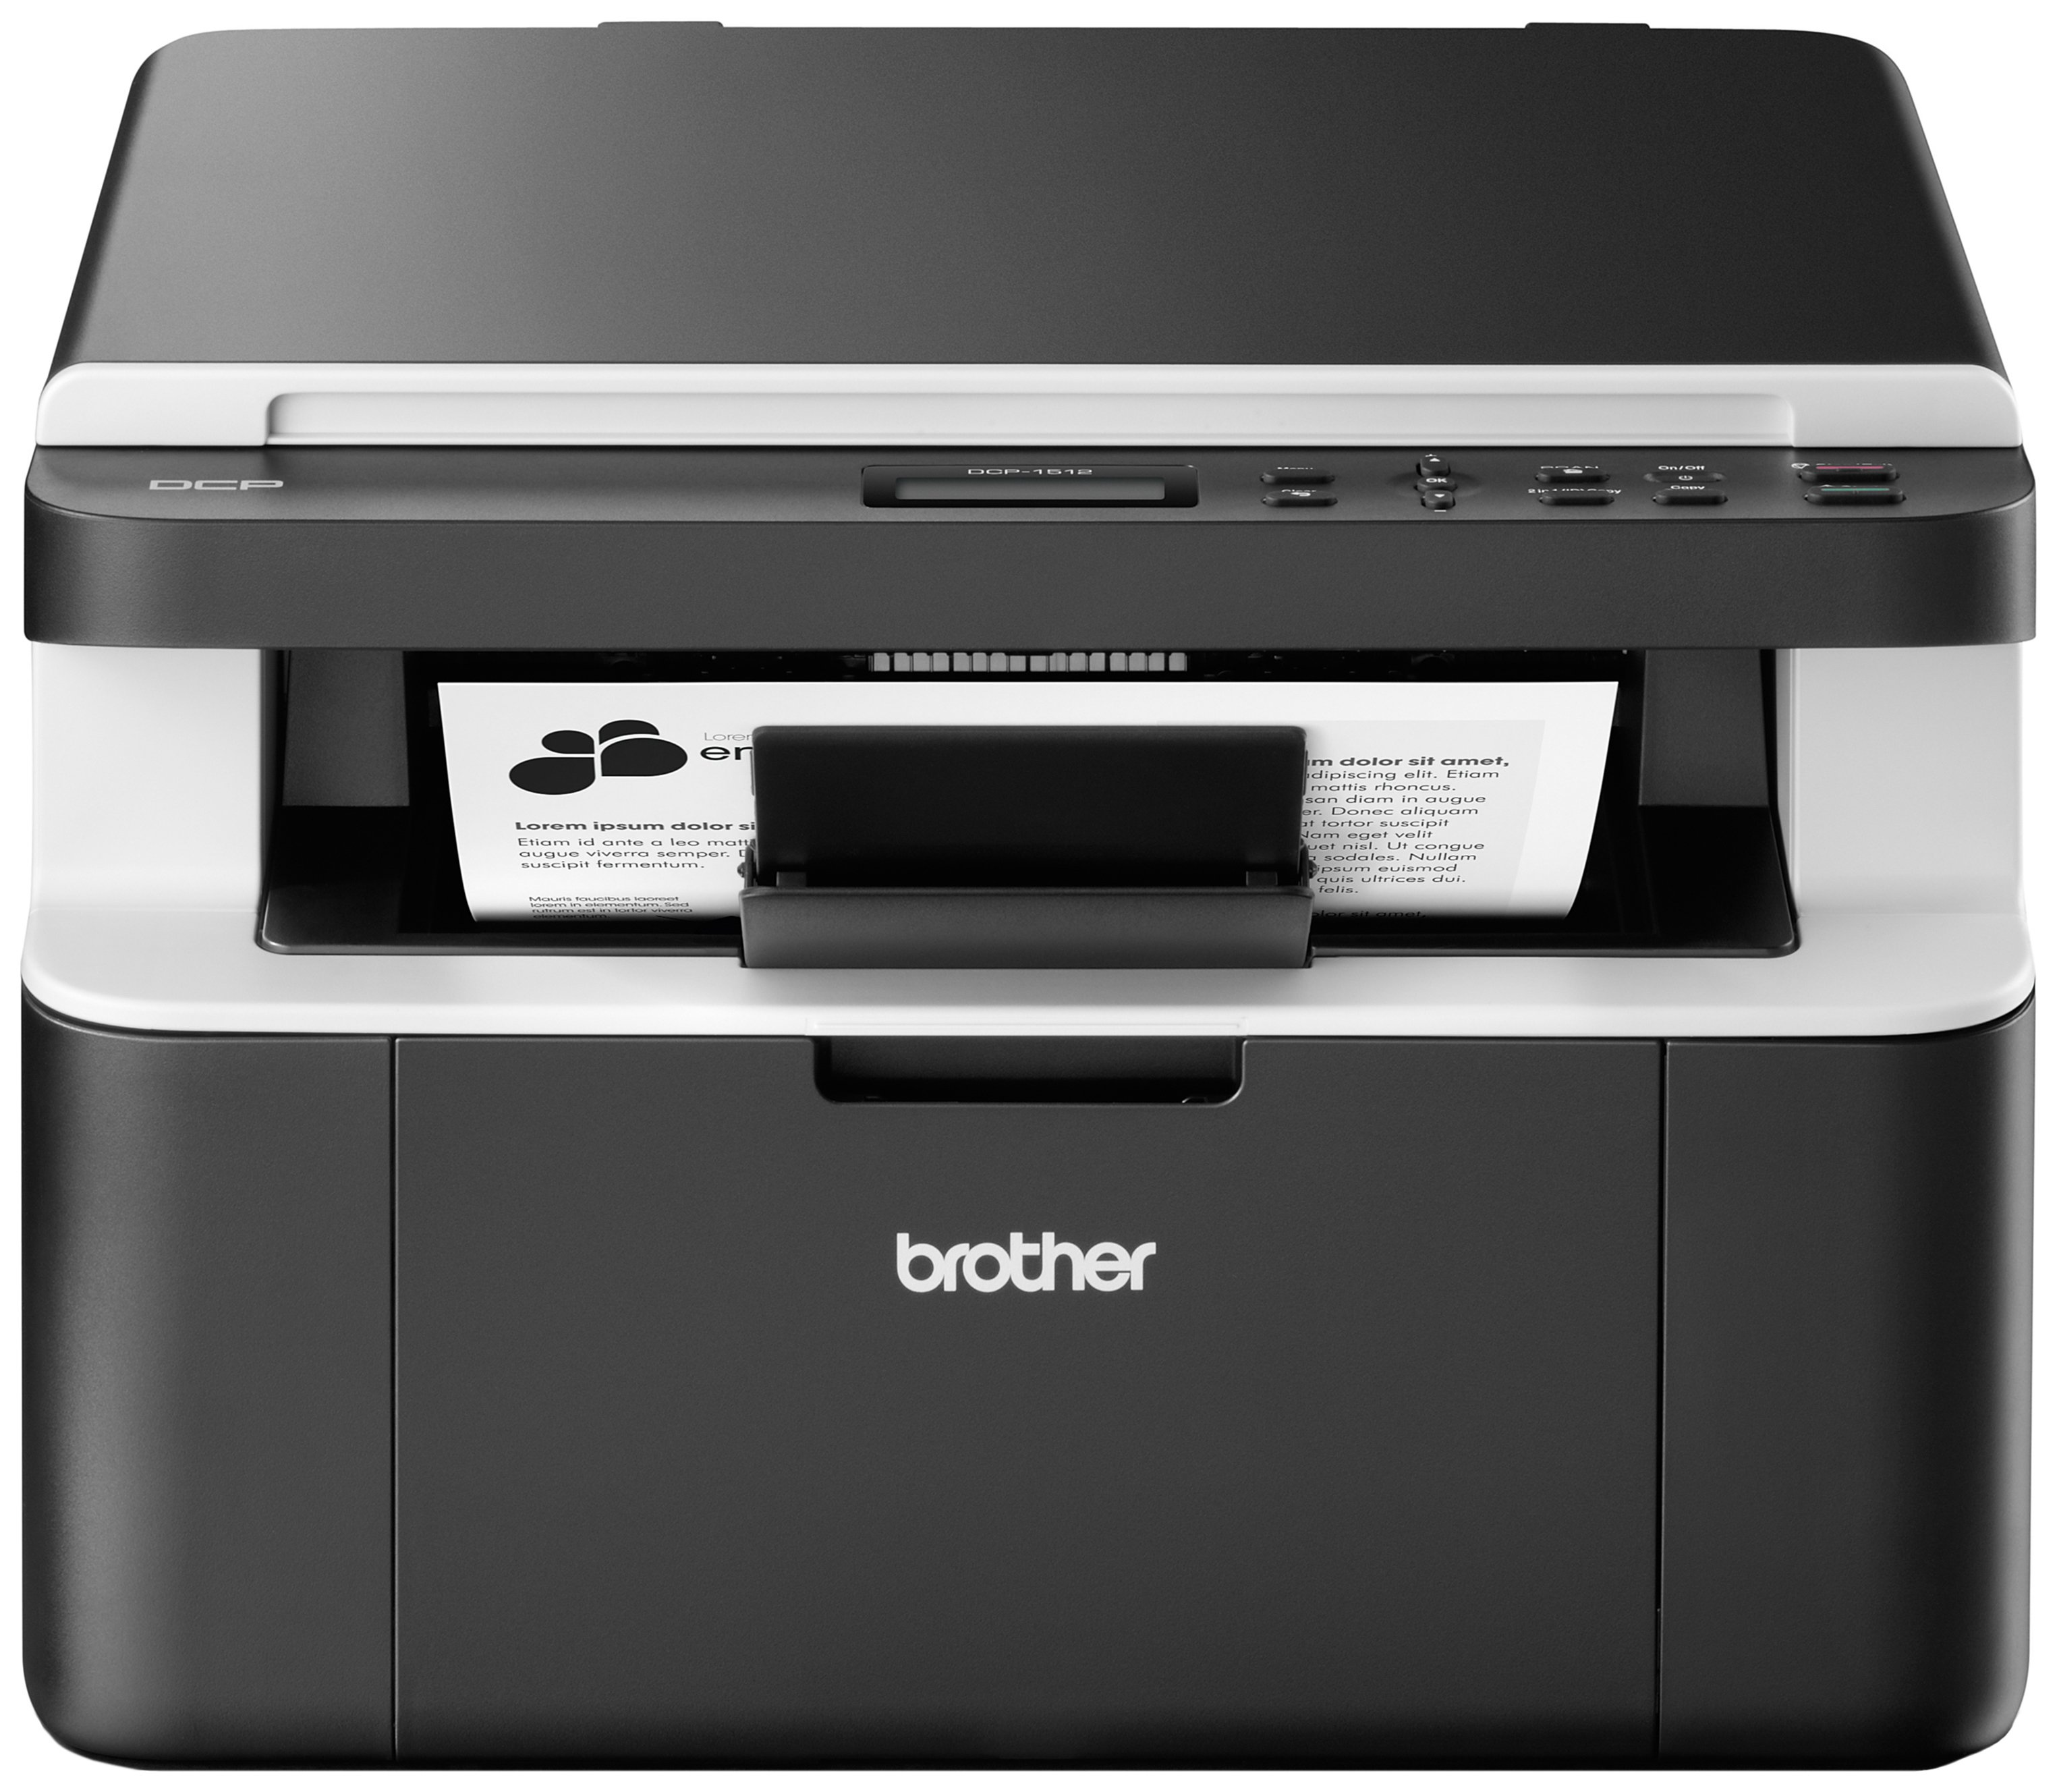 Brother Brother - DCP-1512 Mono Laser Printer